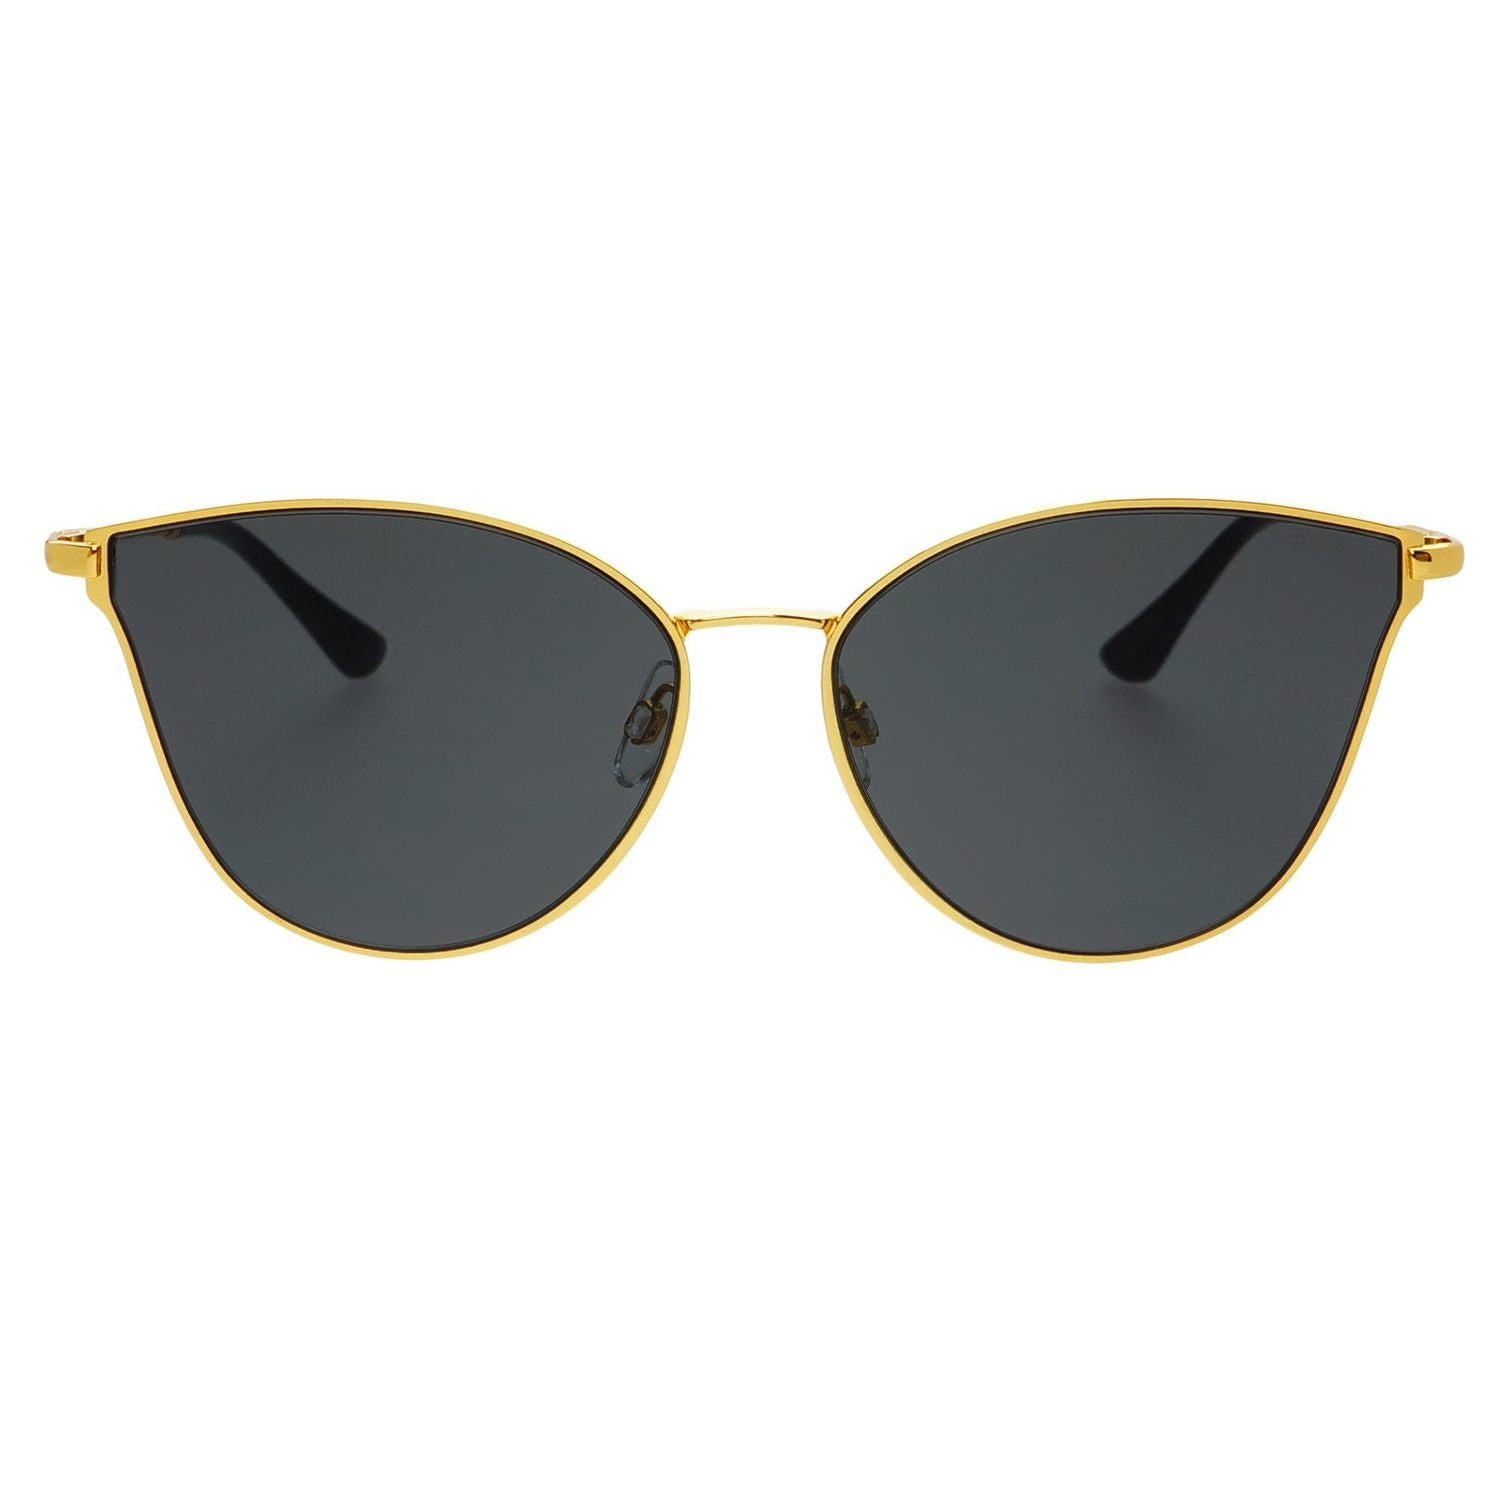 b4fcc3fe7618d Ivy by FREYRS - Black and Gold Modern Cat Eye Sunglasses – SHAY + james